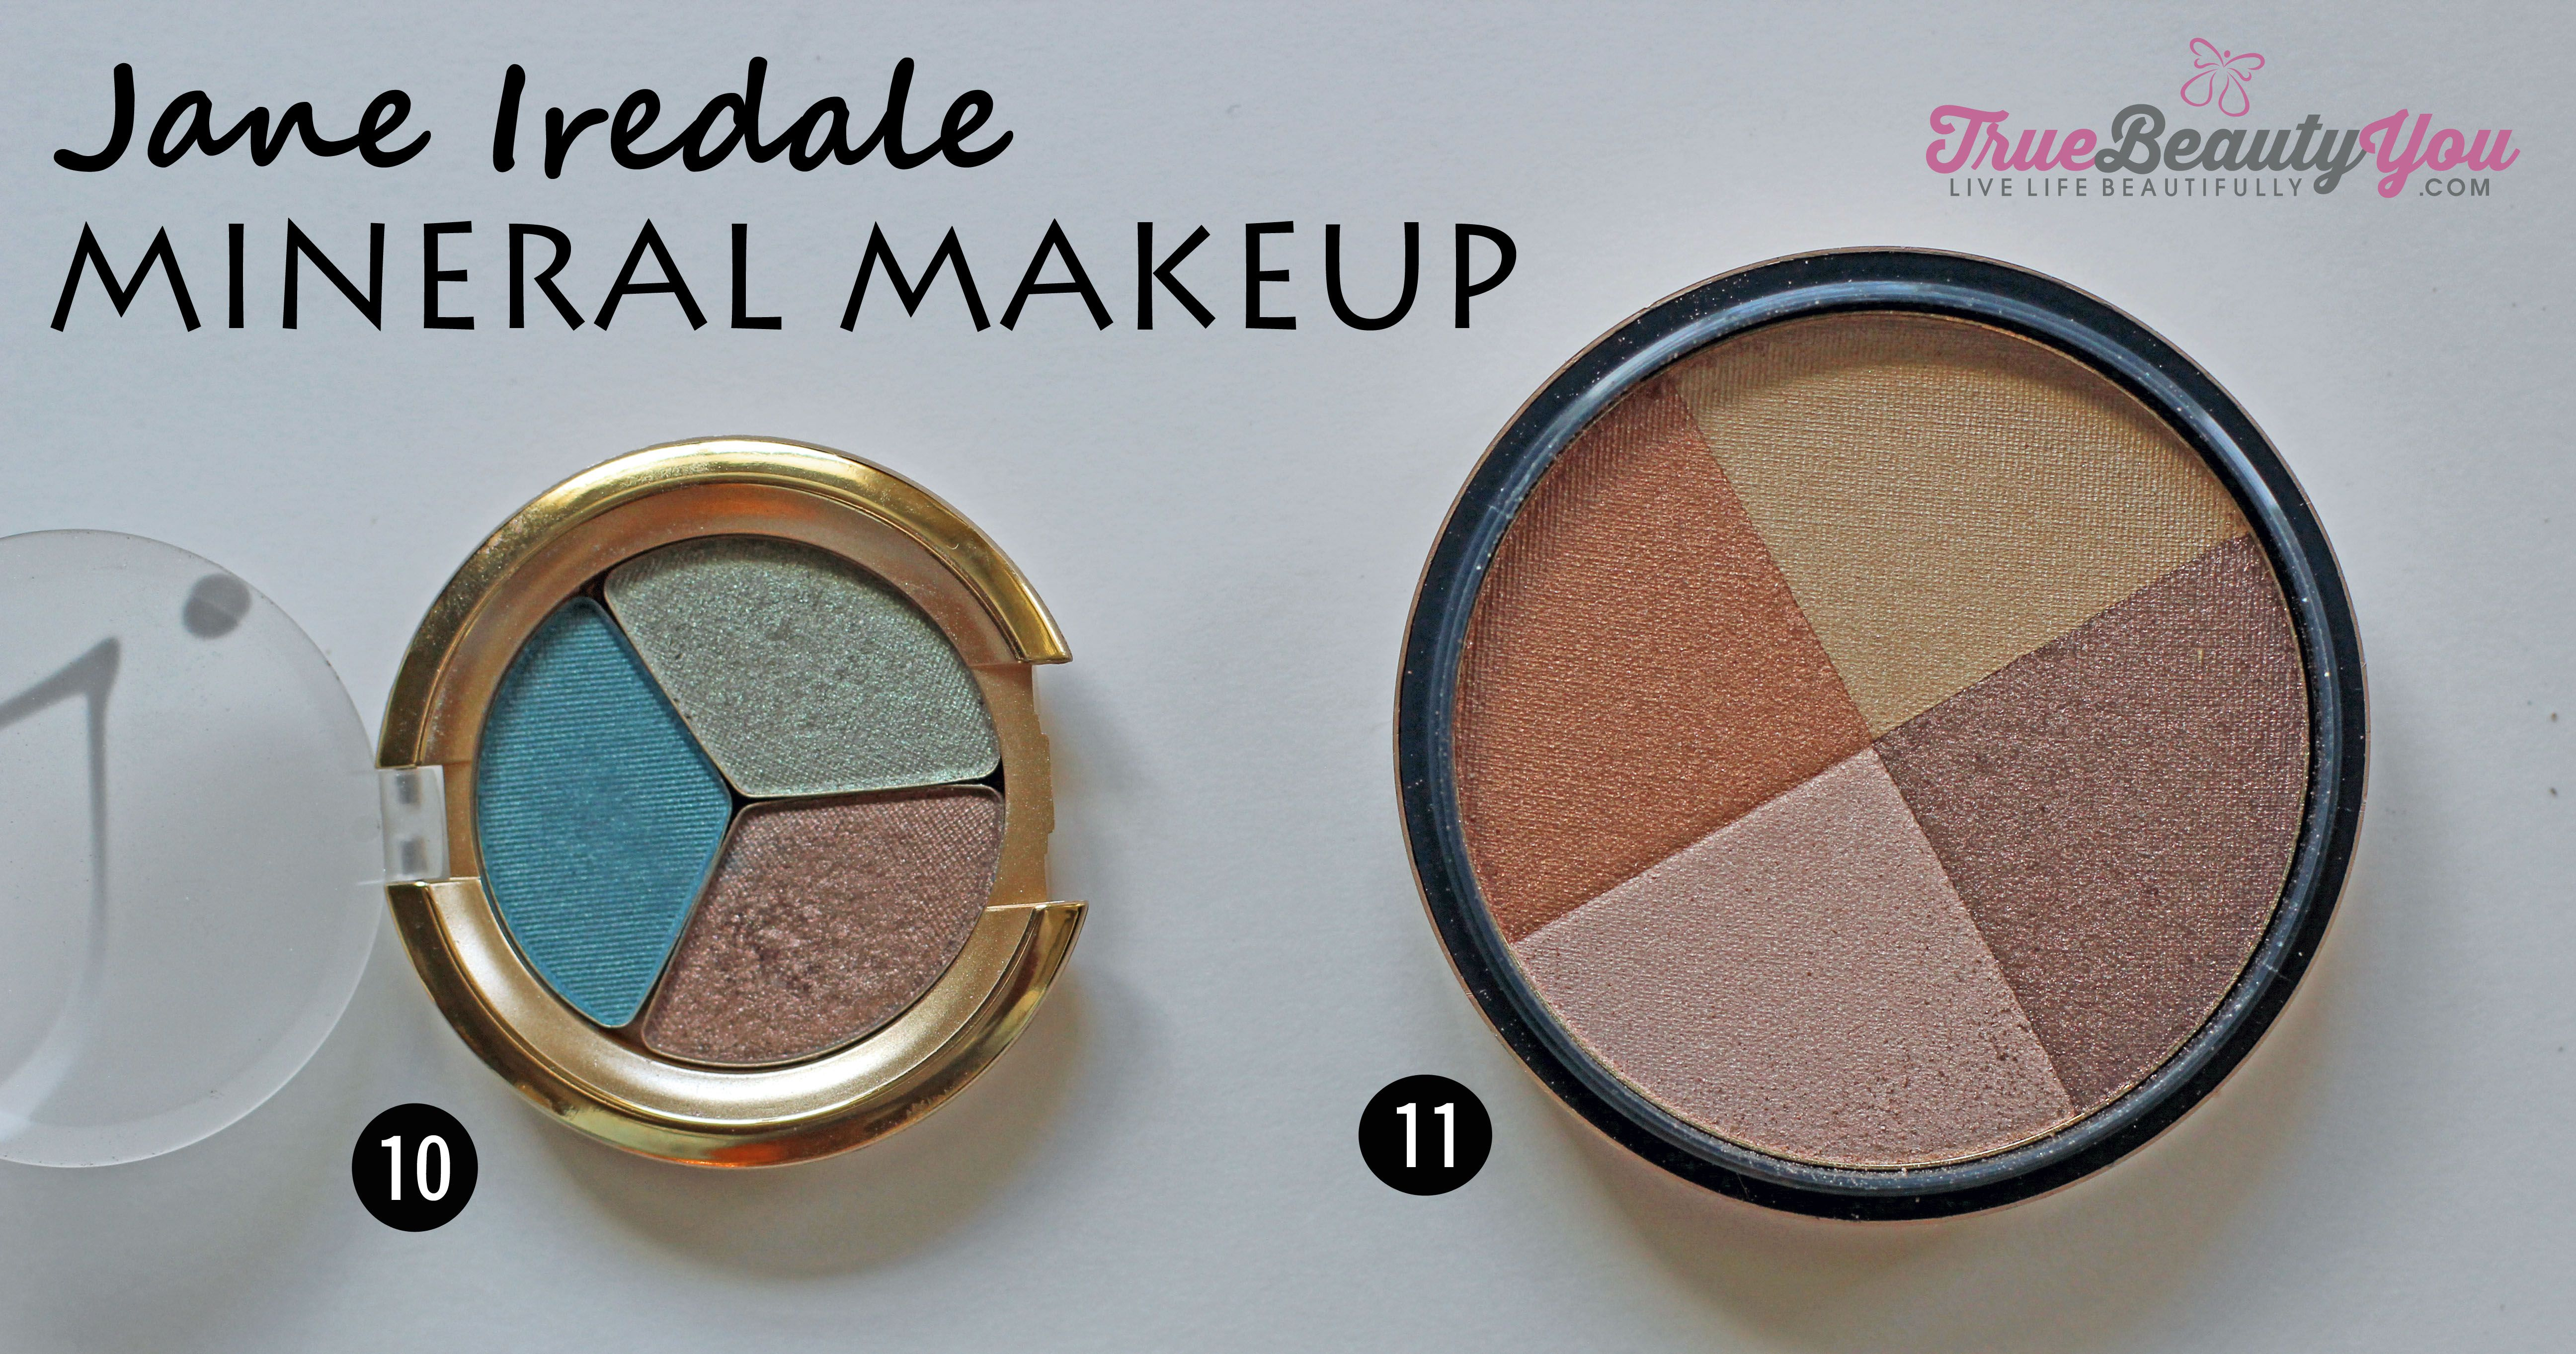 Jane Iredale (Bronzer and Shadow). This makeup line is non